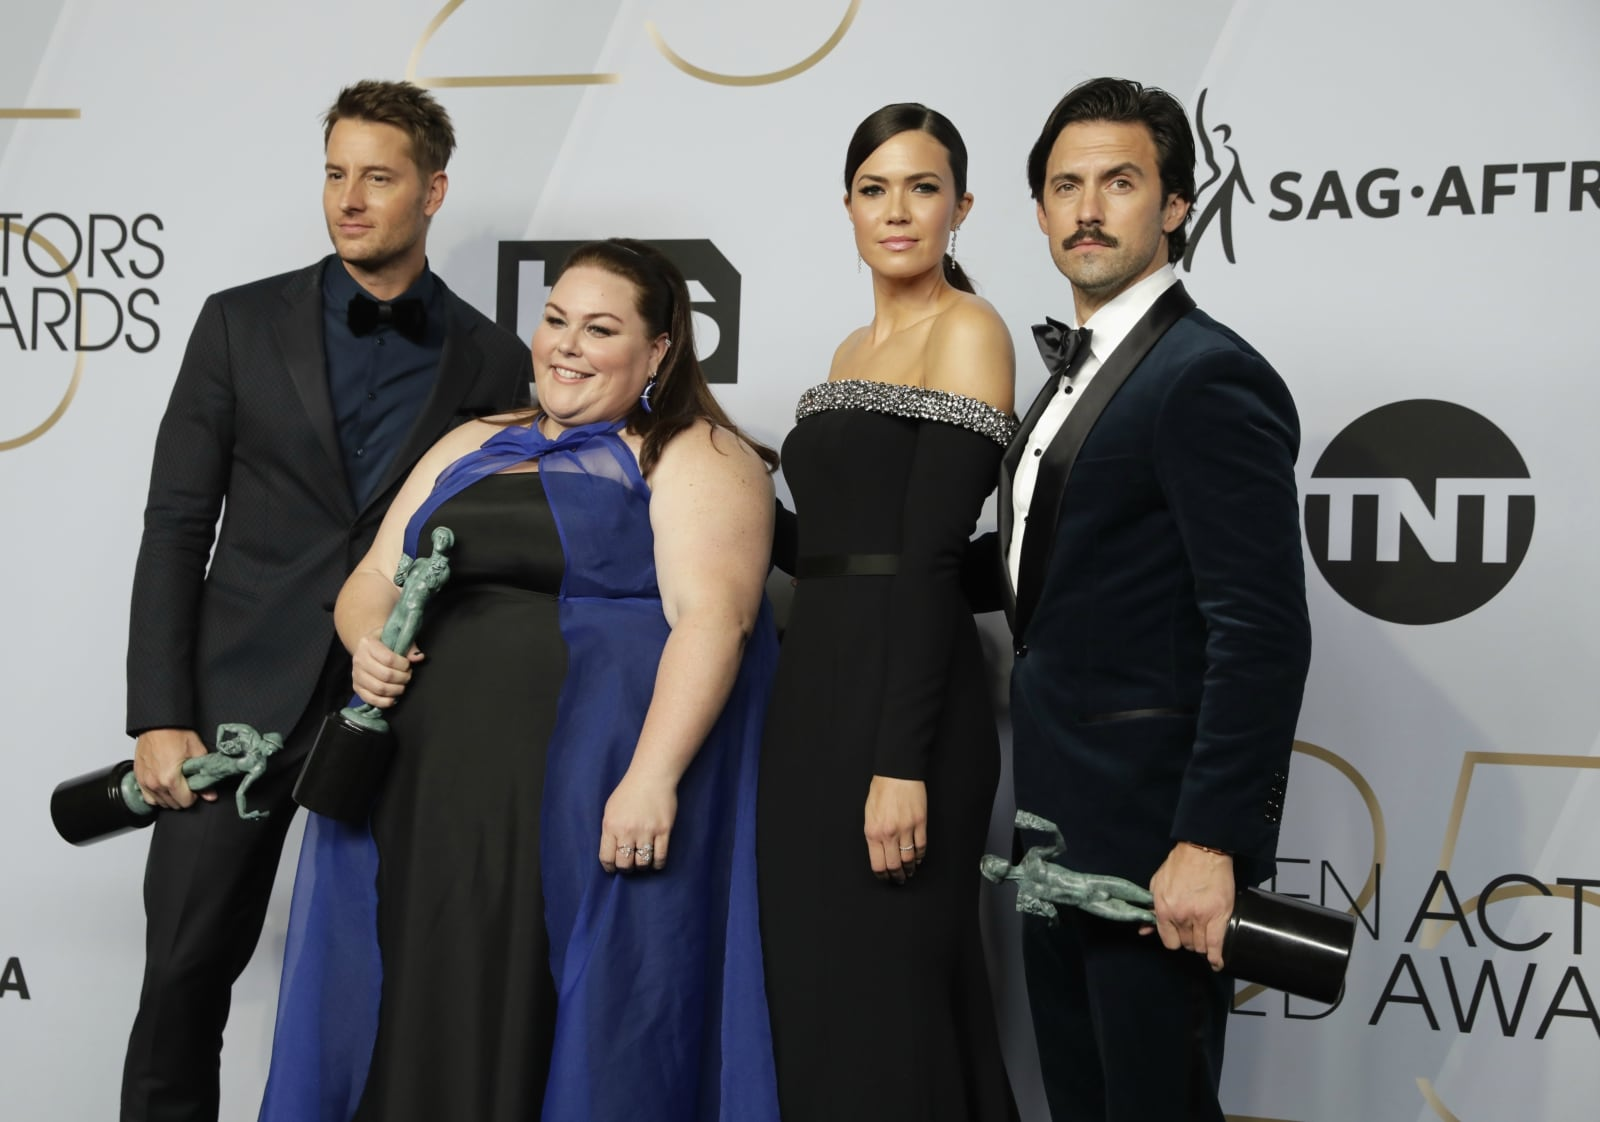 25th Screen Actors Guild Awards – Photo Room – Los Angeles, California, US, January 27, 2019 - Justin Hartley, Chrissy Metz, Mandy Moore and Milo Ventimiglia pose backstage with their Outstanding Performance by an Ensemble in a Drama Series for